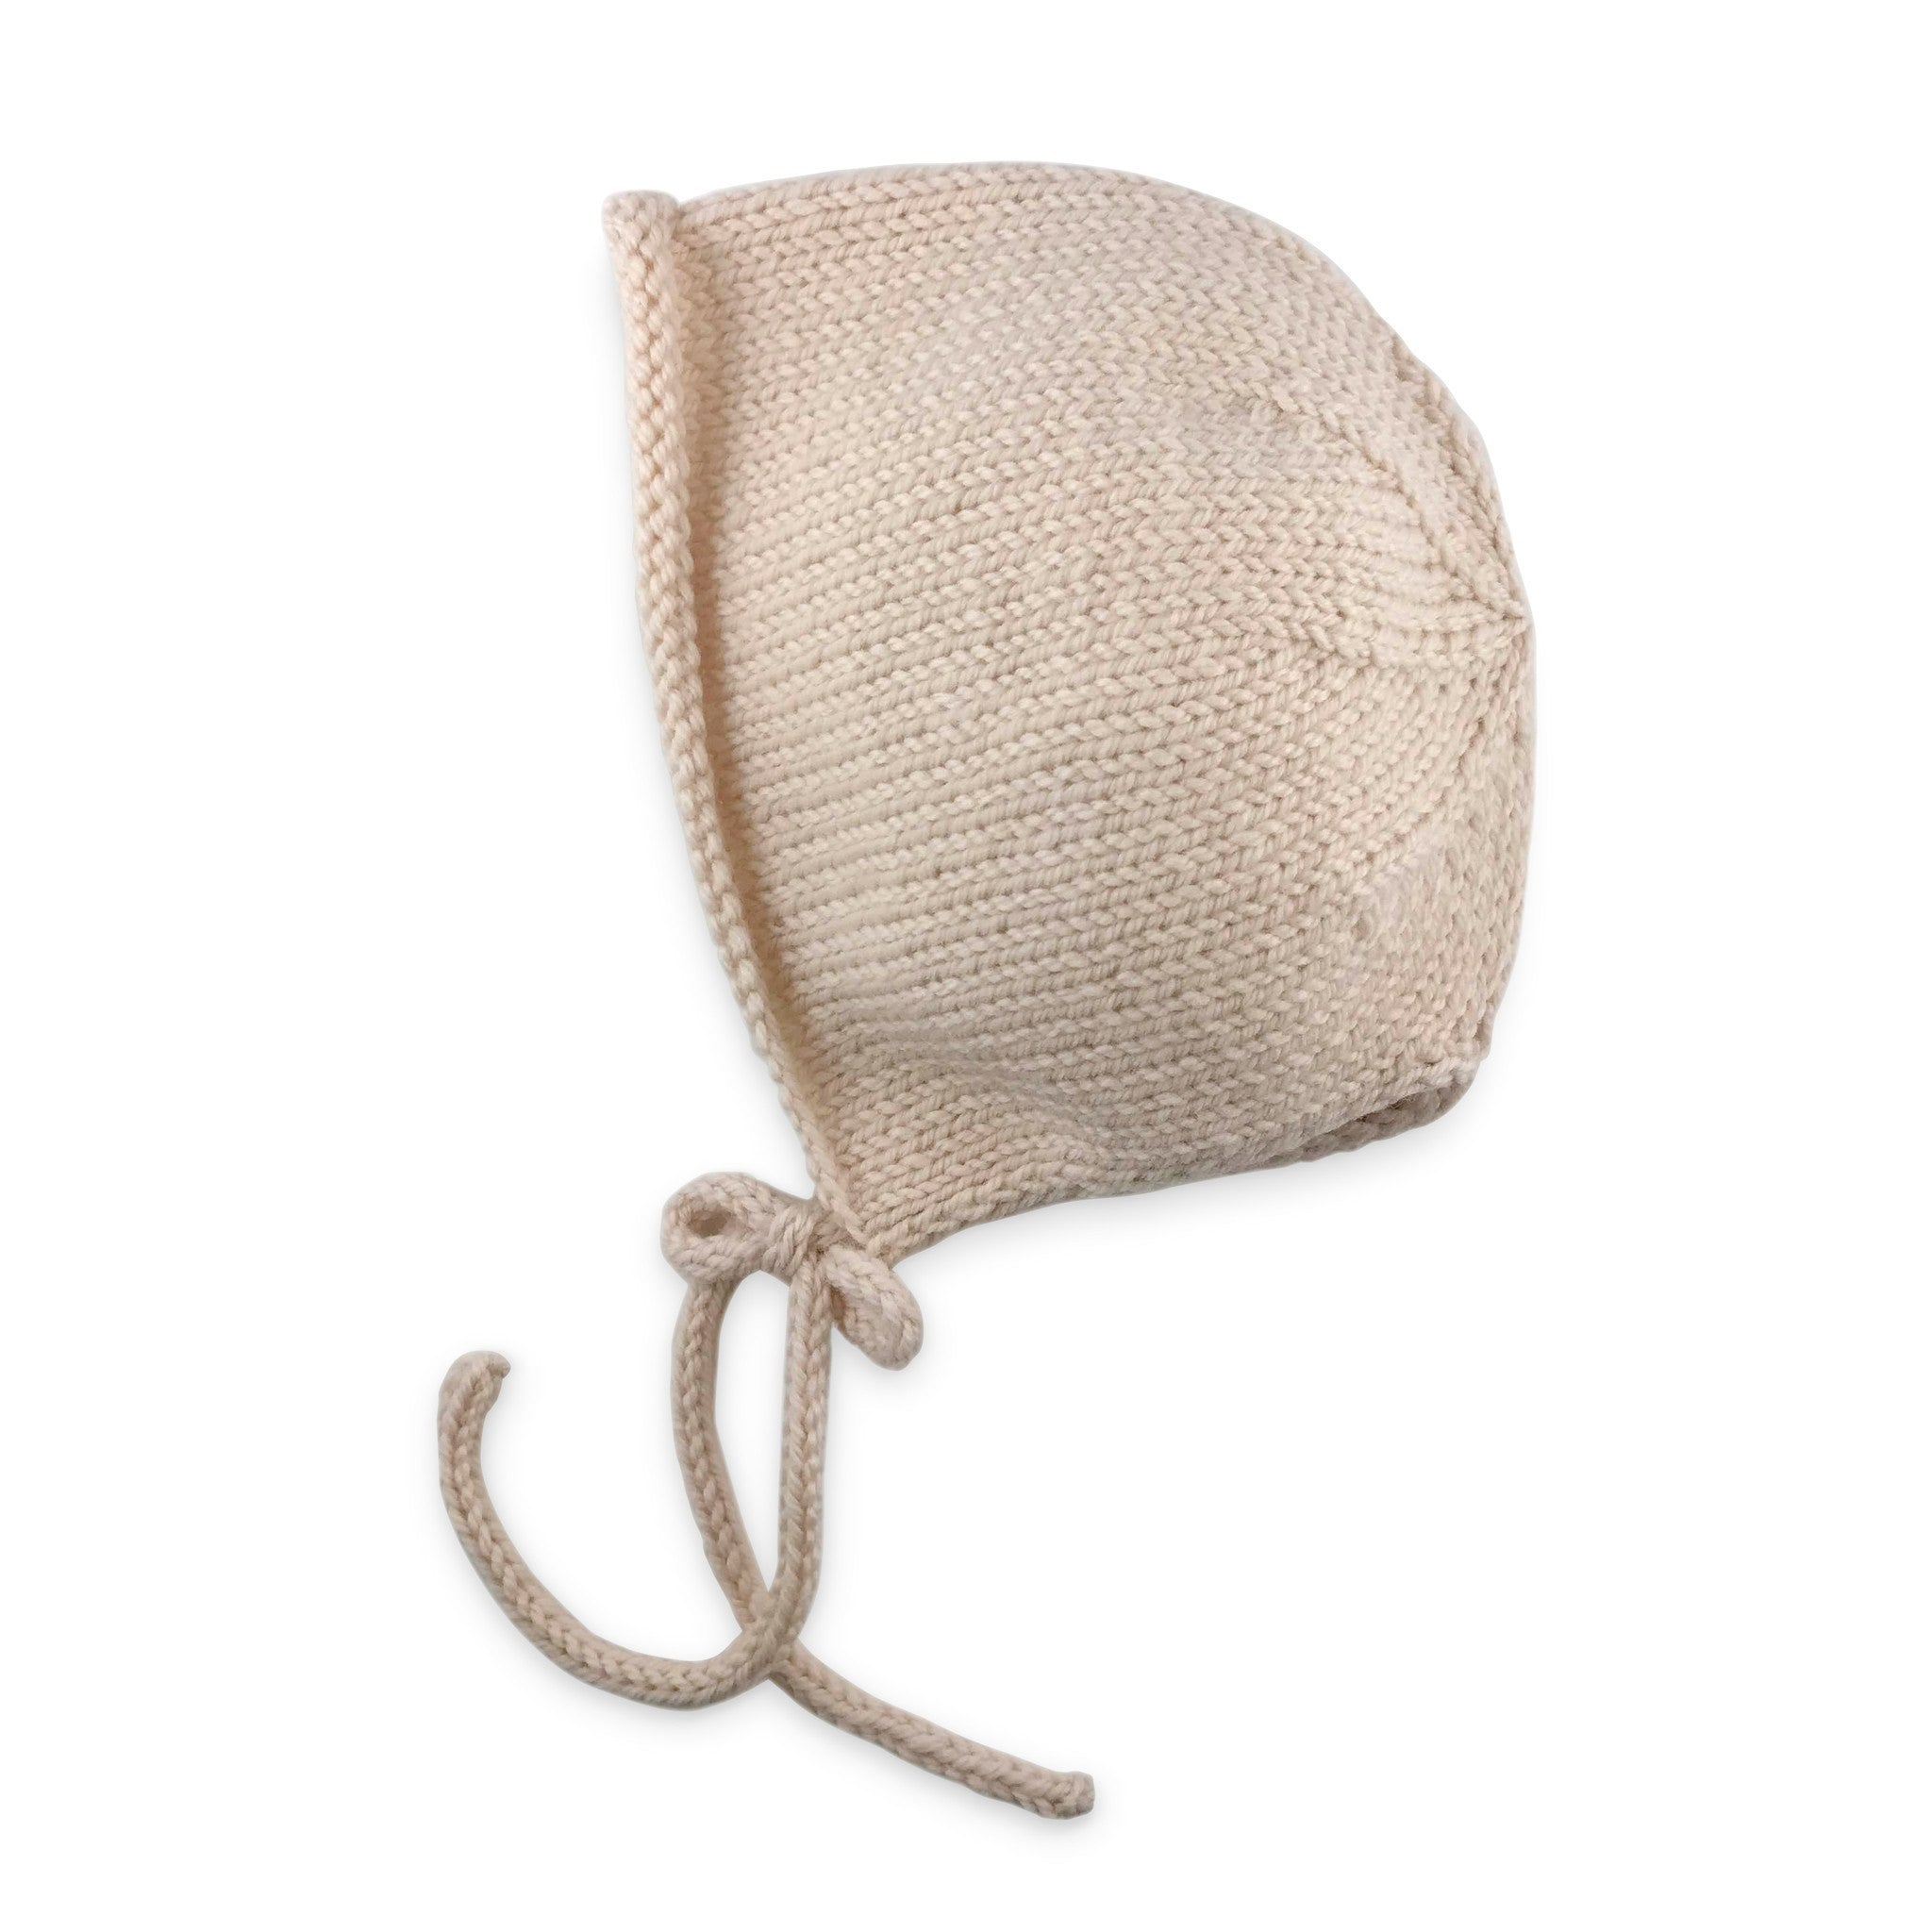 fawn&forest Knit Brynlee Bonnet - Petal - fawn&forest